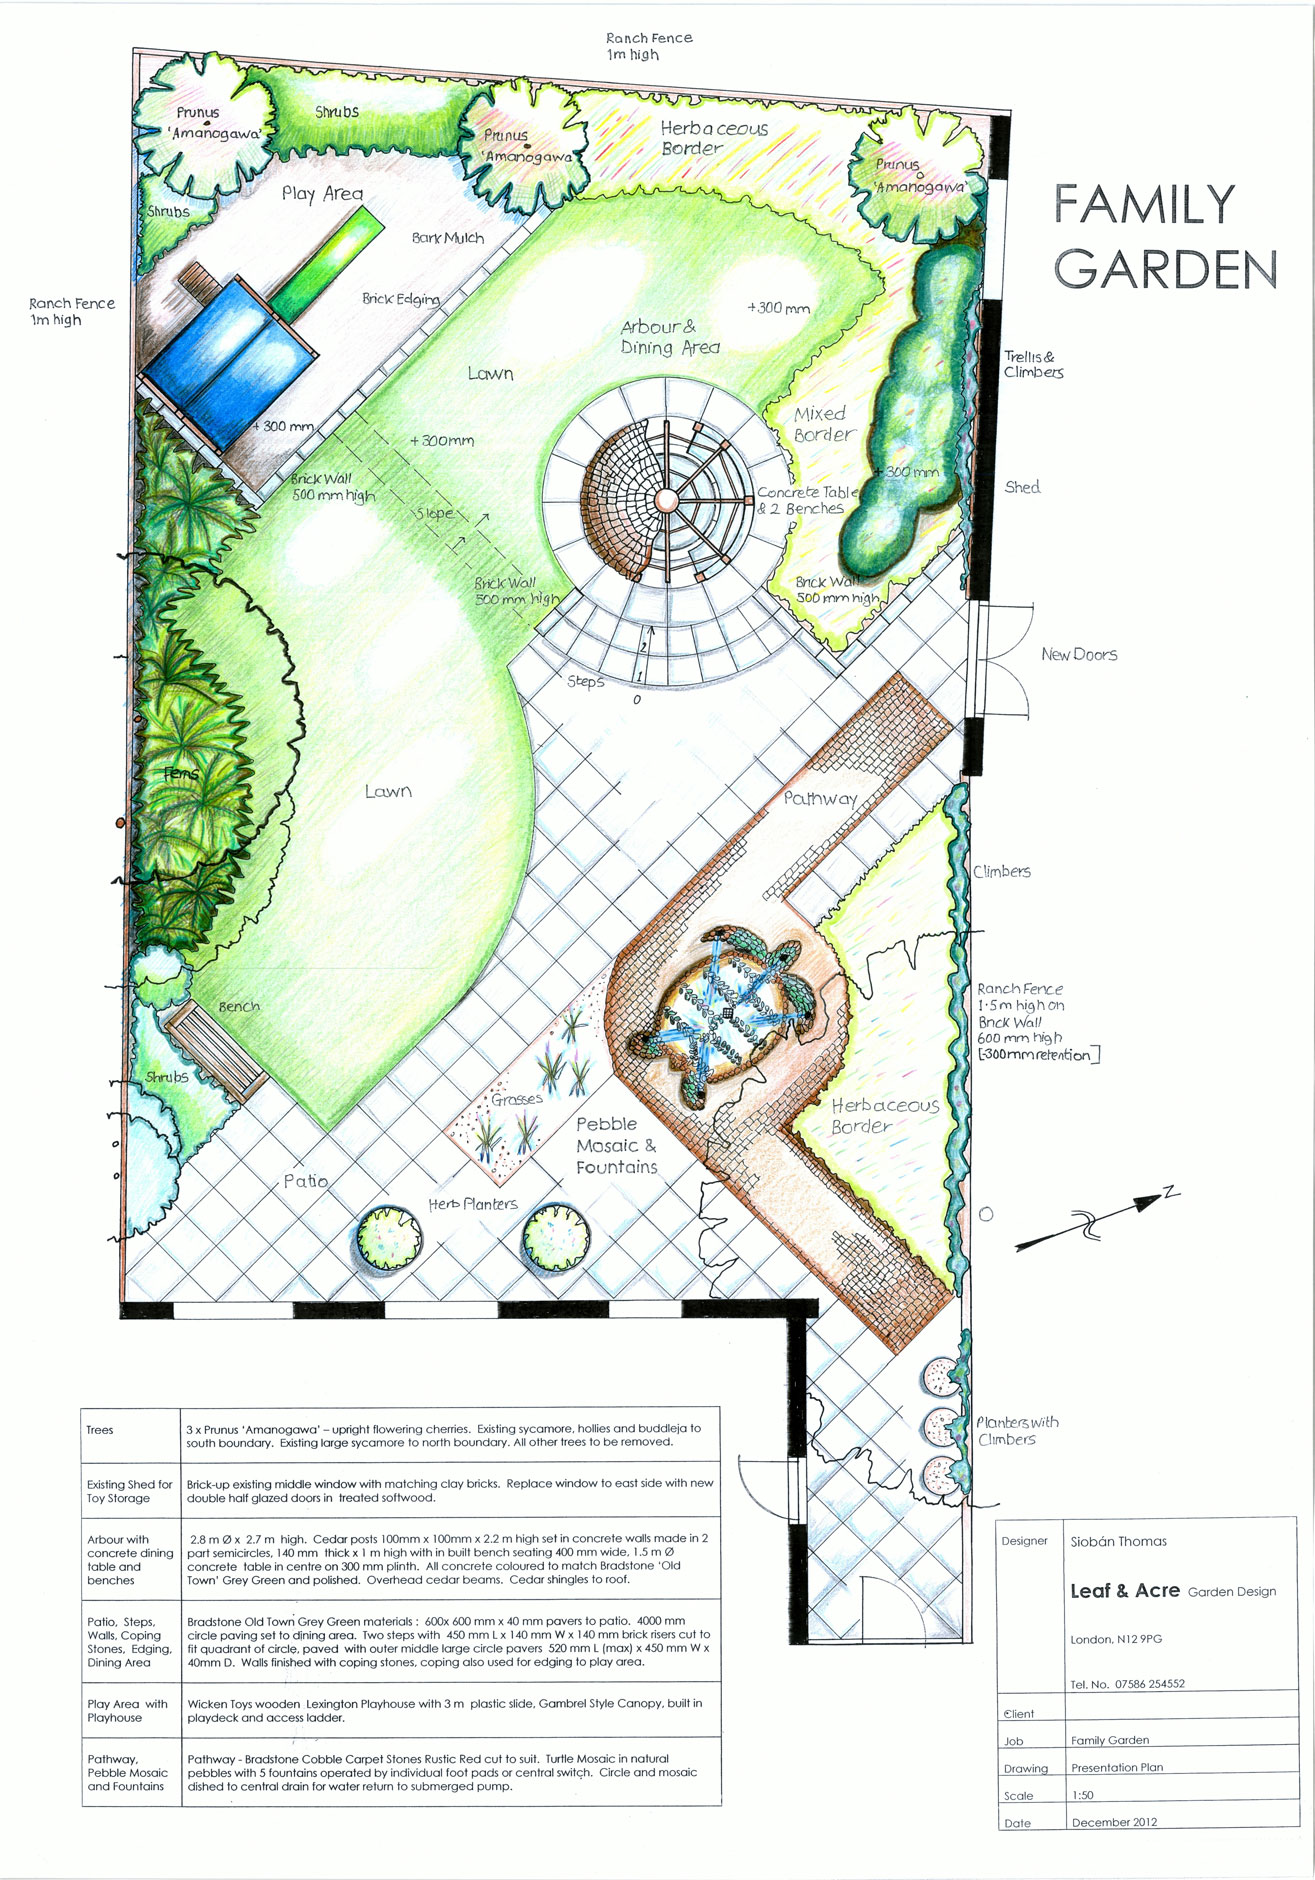 Garden design portfolio leaf and acre for Homegardendesignplan